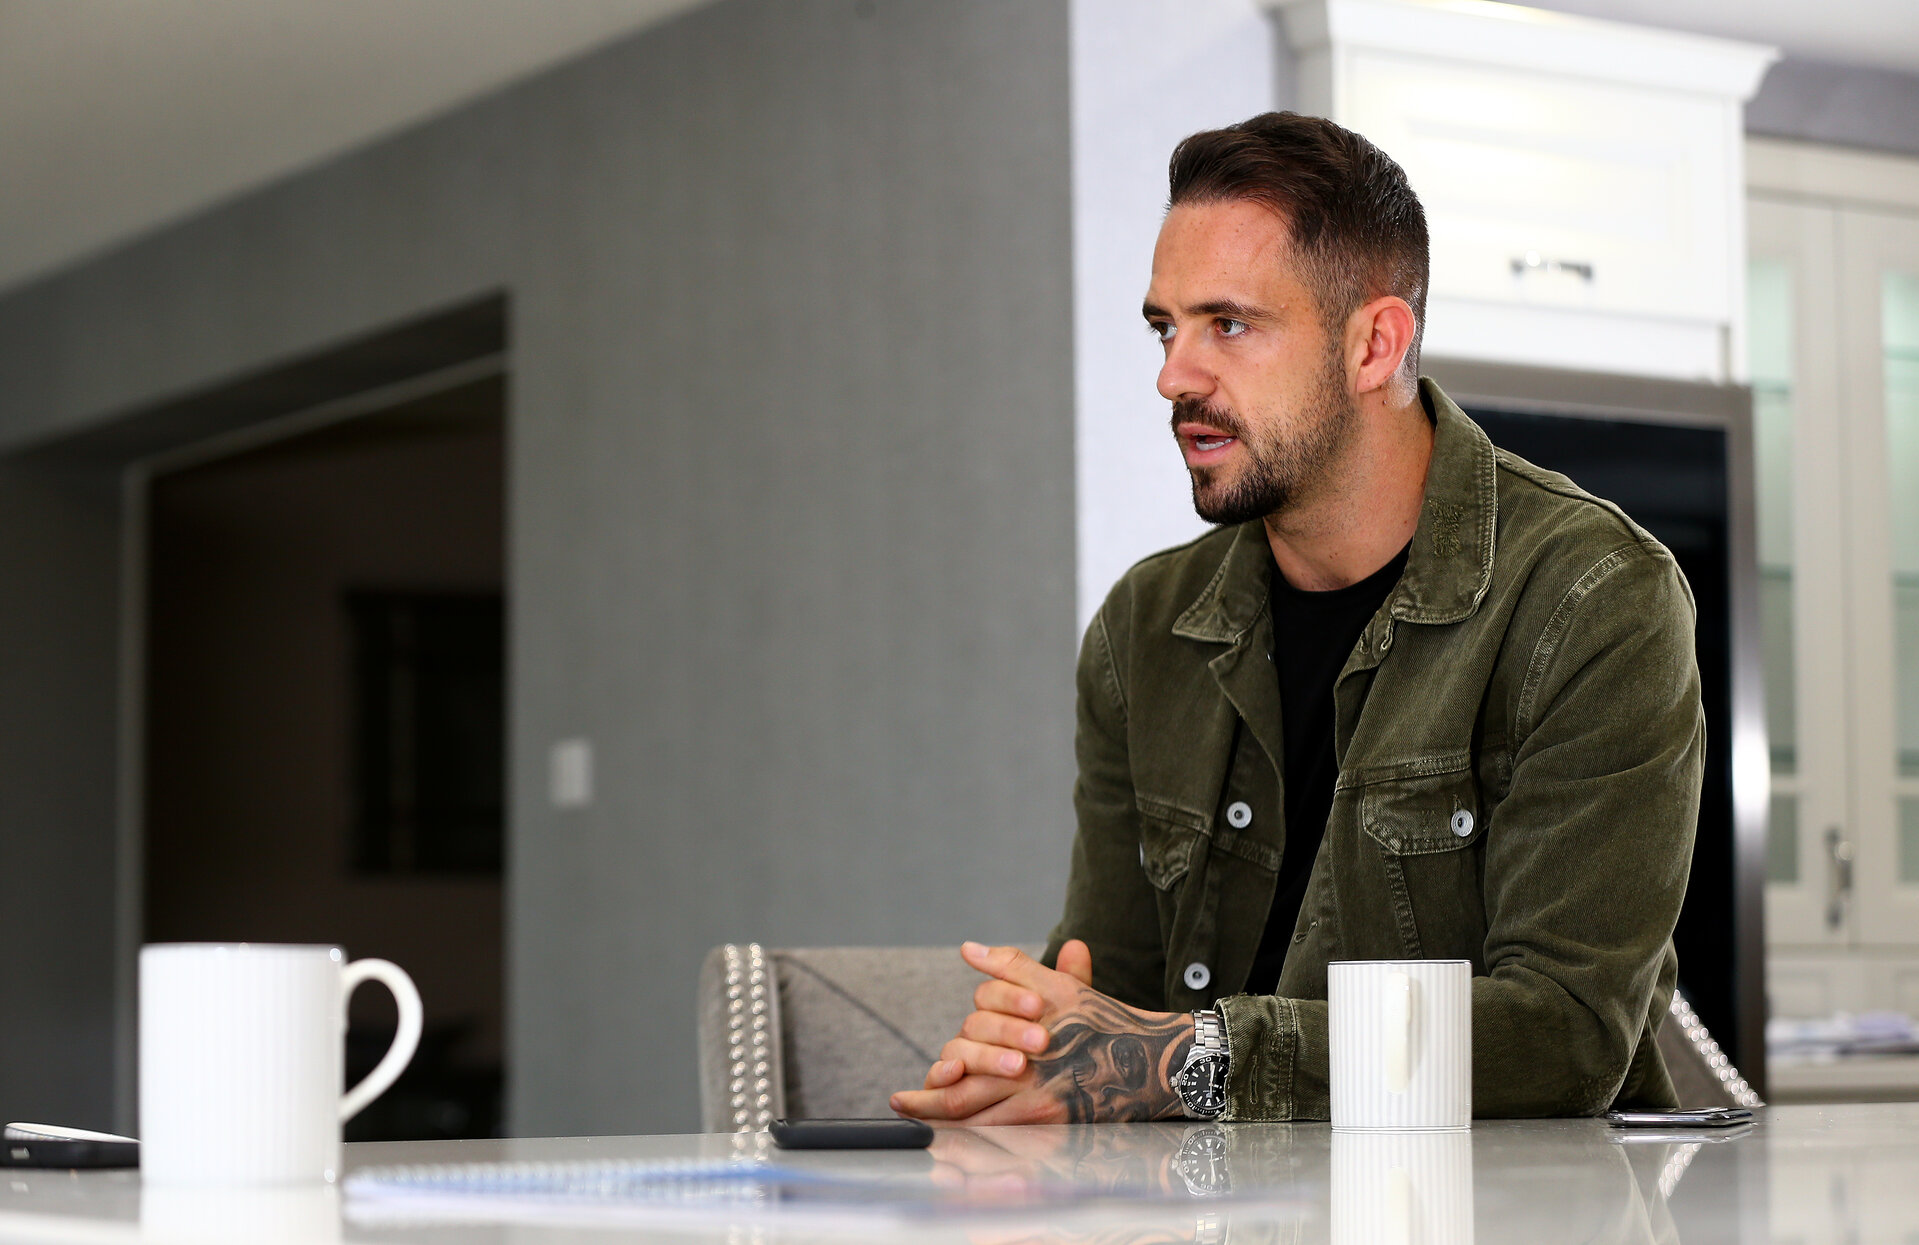 SOUTHAMPTON, ENGLAND - OCTOBER 17: Danny Ings of Southampton FC pictured at his home in Southampton, for the club's match day magazine, on October 17, 2019 in Southampton, England. (Photo by Matt Watson/Southampton FC via Getty Images)